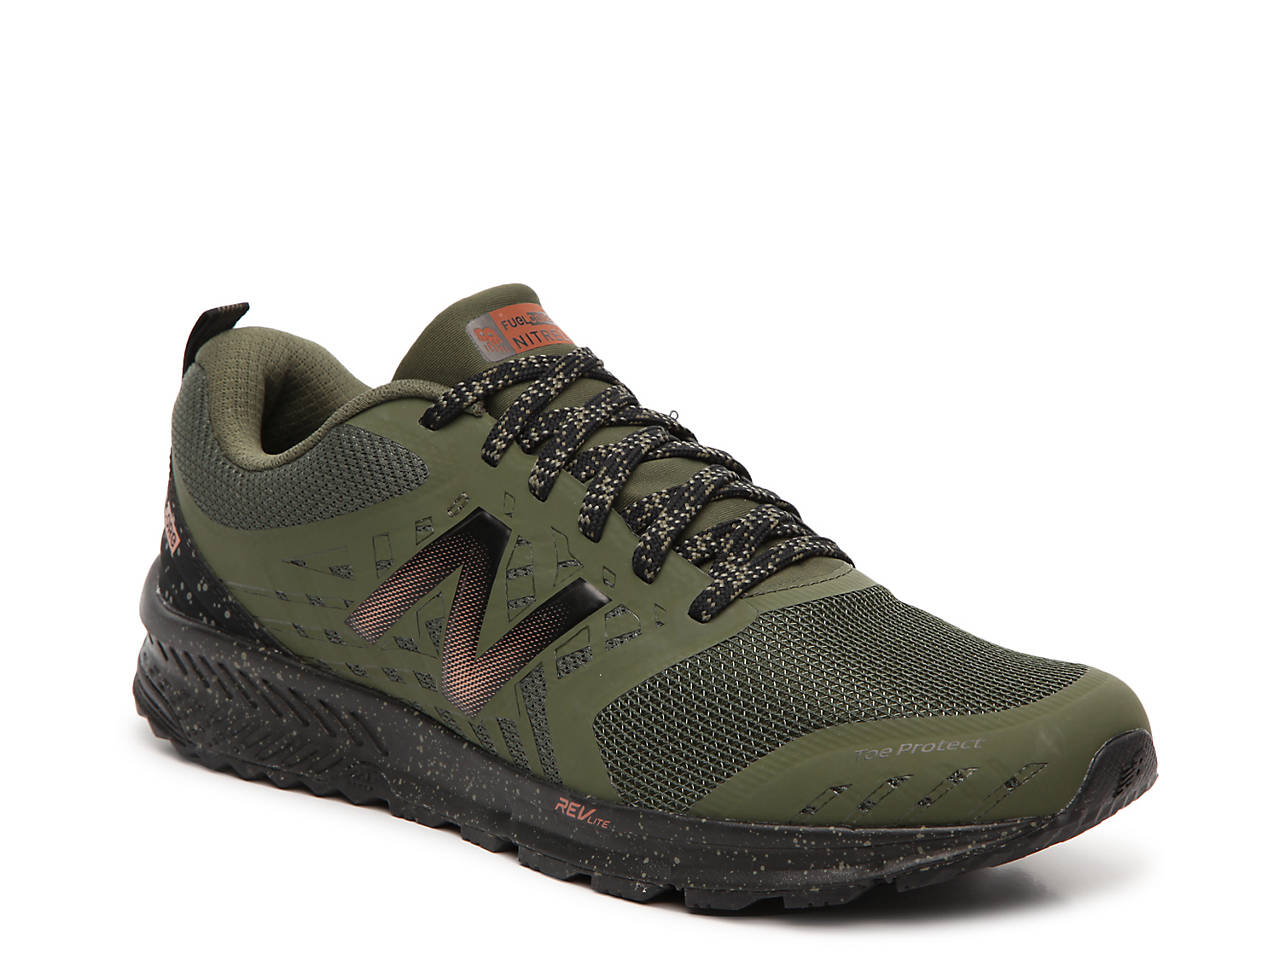 special for shoe latest trends of 2019 multiple colors FuelCore Nitrel Mountain Travel Lightweight Running Shoe - Men's